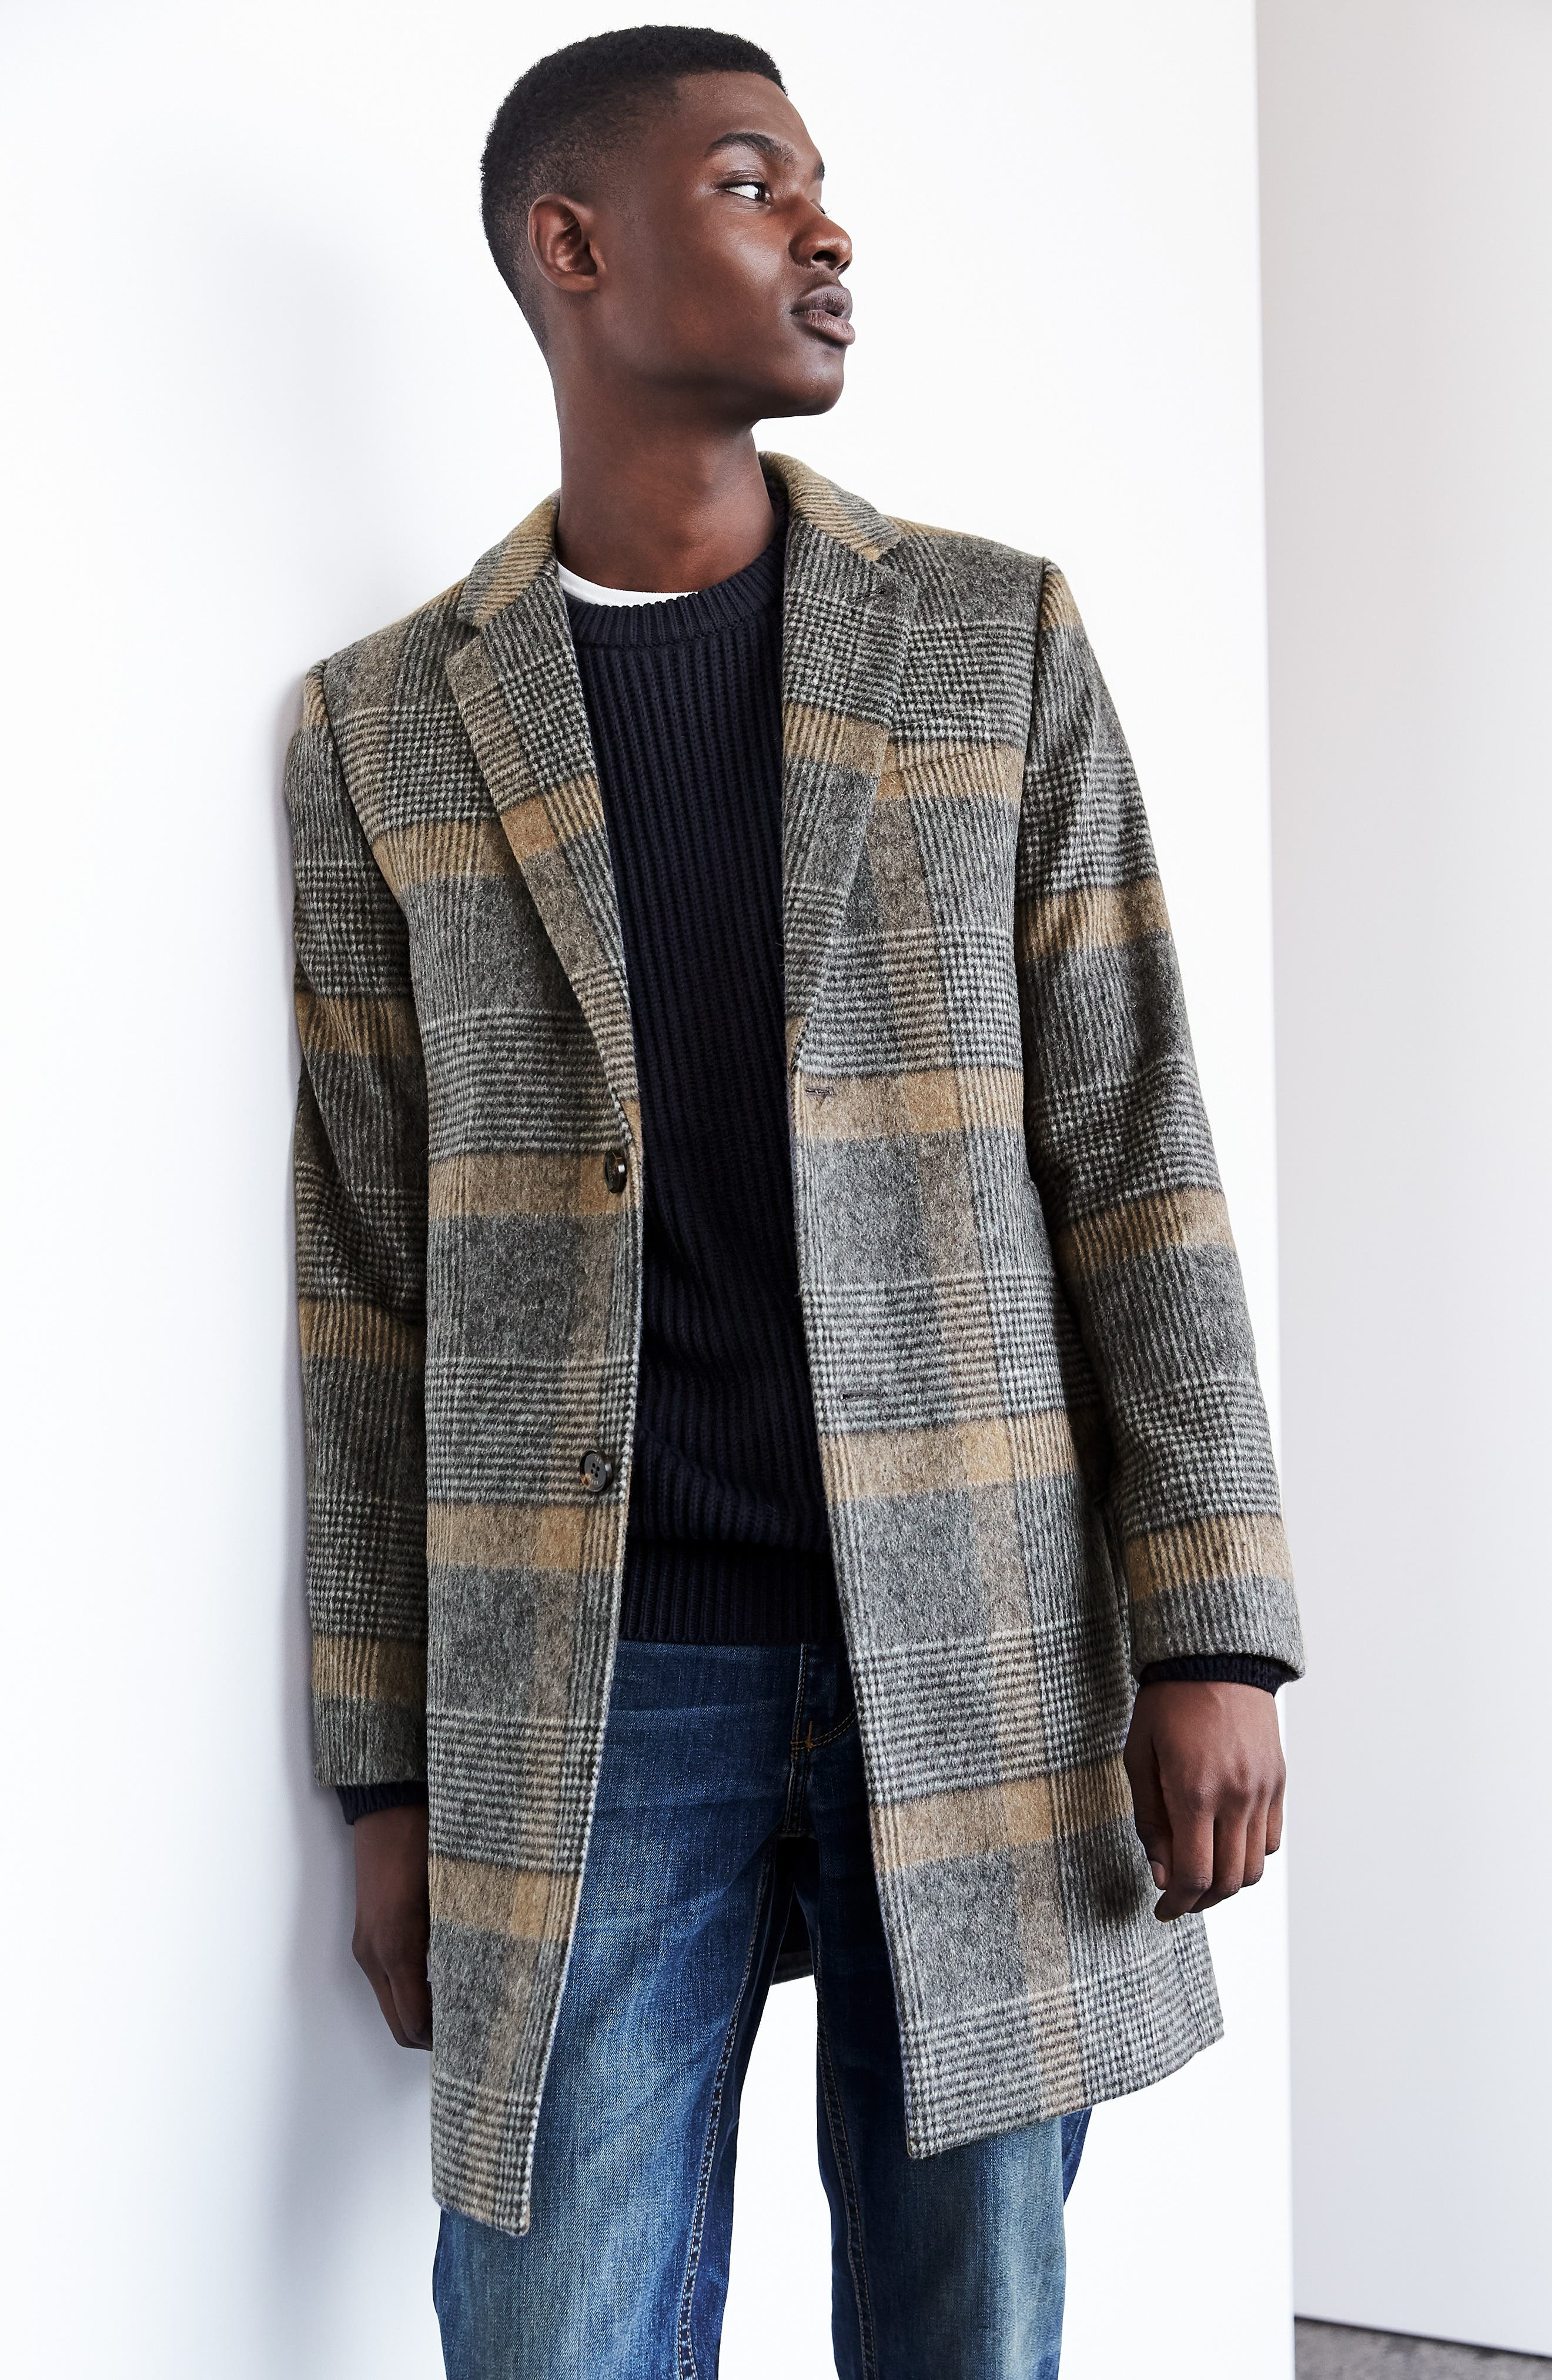 Frais Check Wool Overcoat,                             Alternate thumbnail 8, color,                             CAMEL